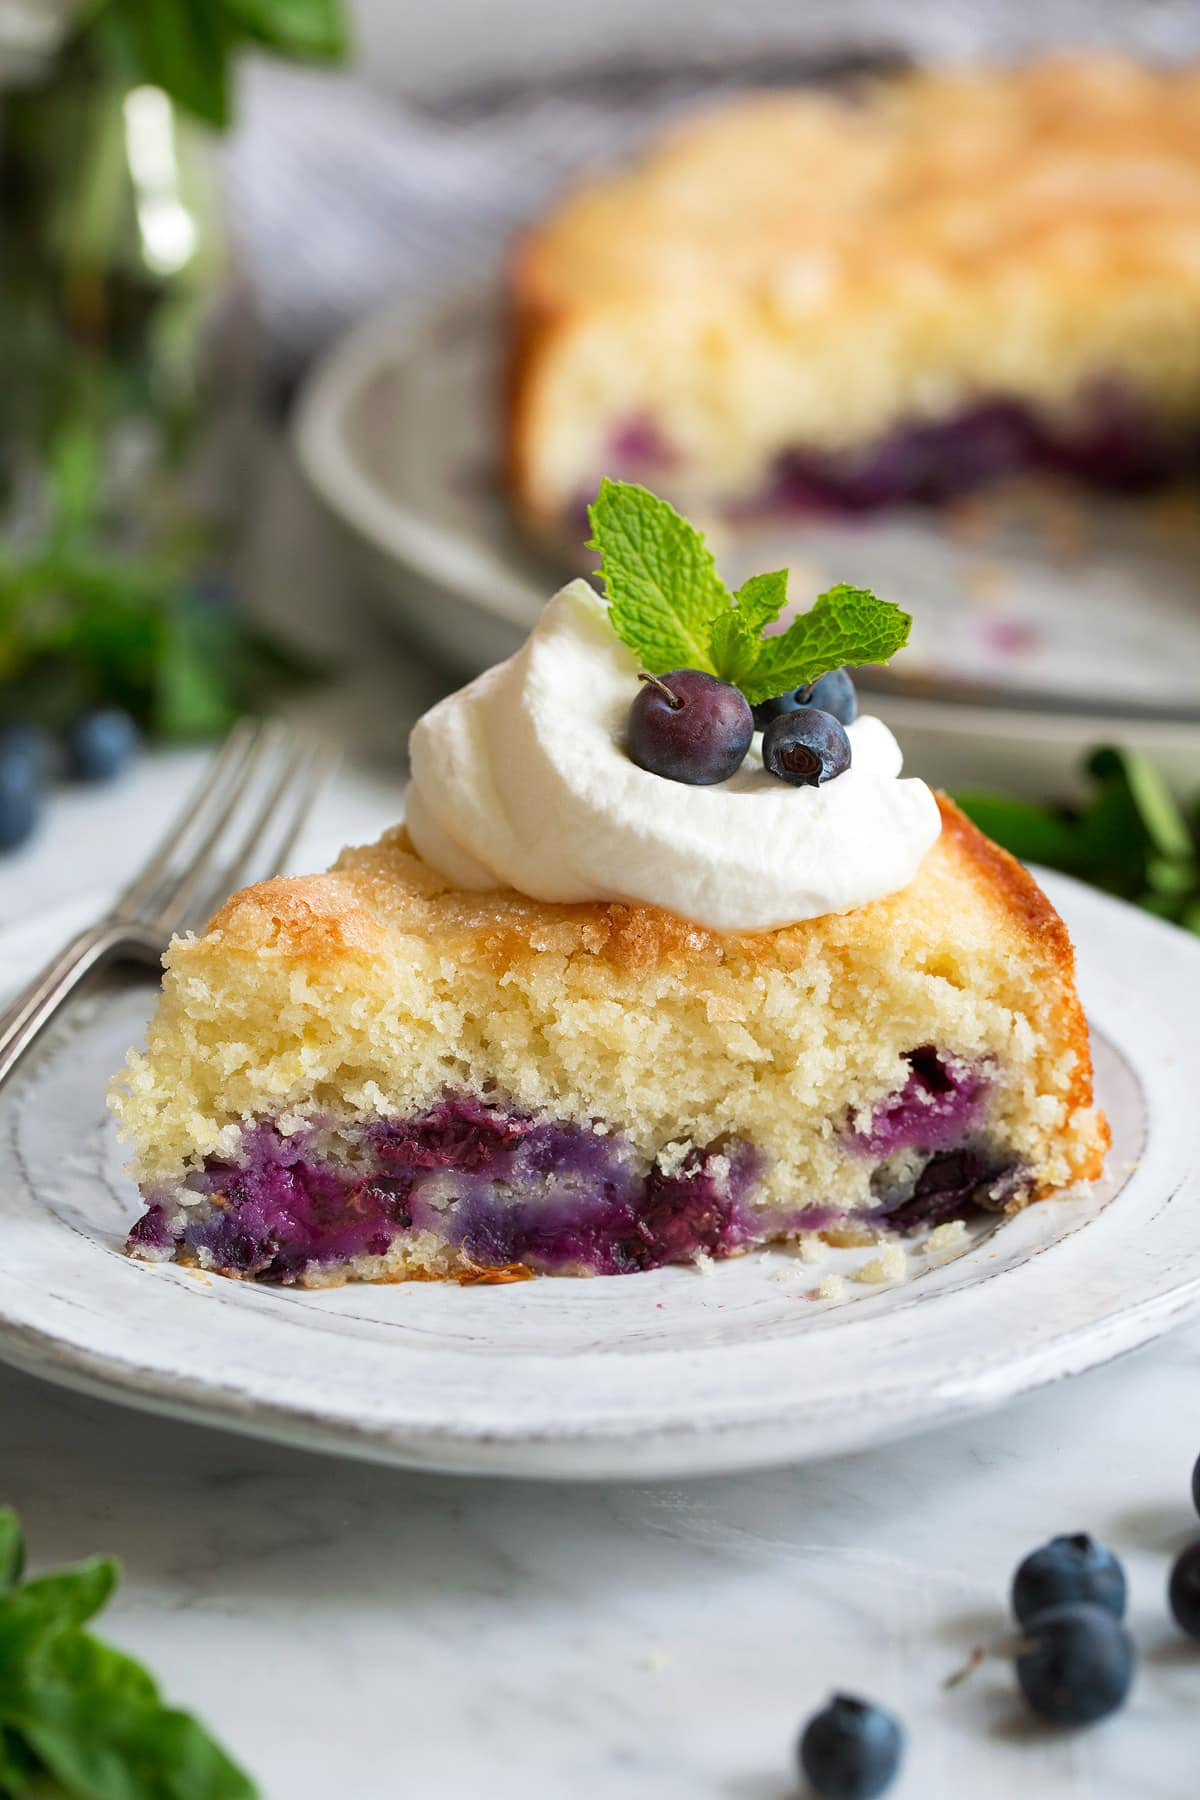 blueberry buttermilk cake slice topped with whipped cream and mint leaves